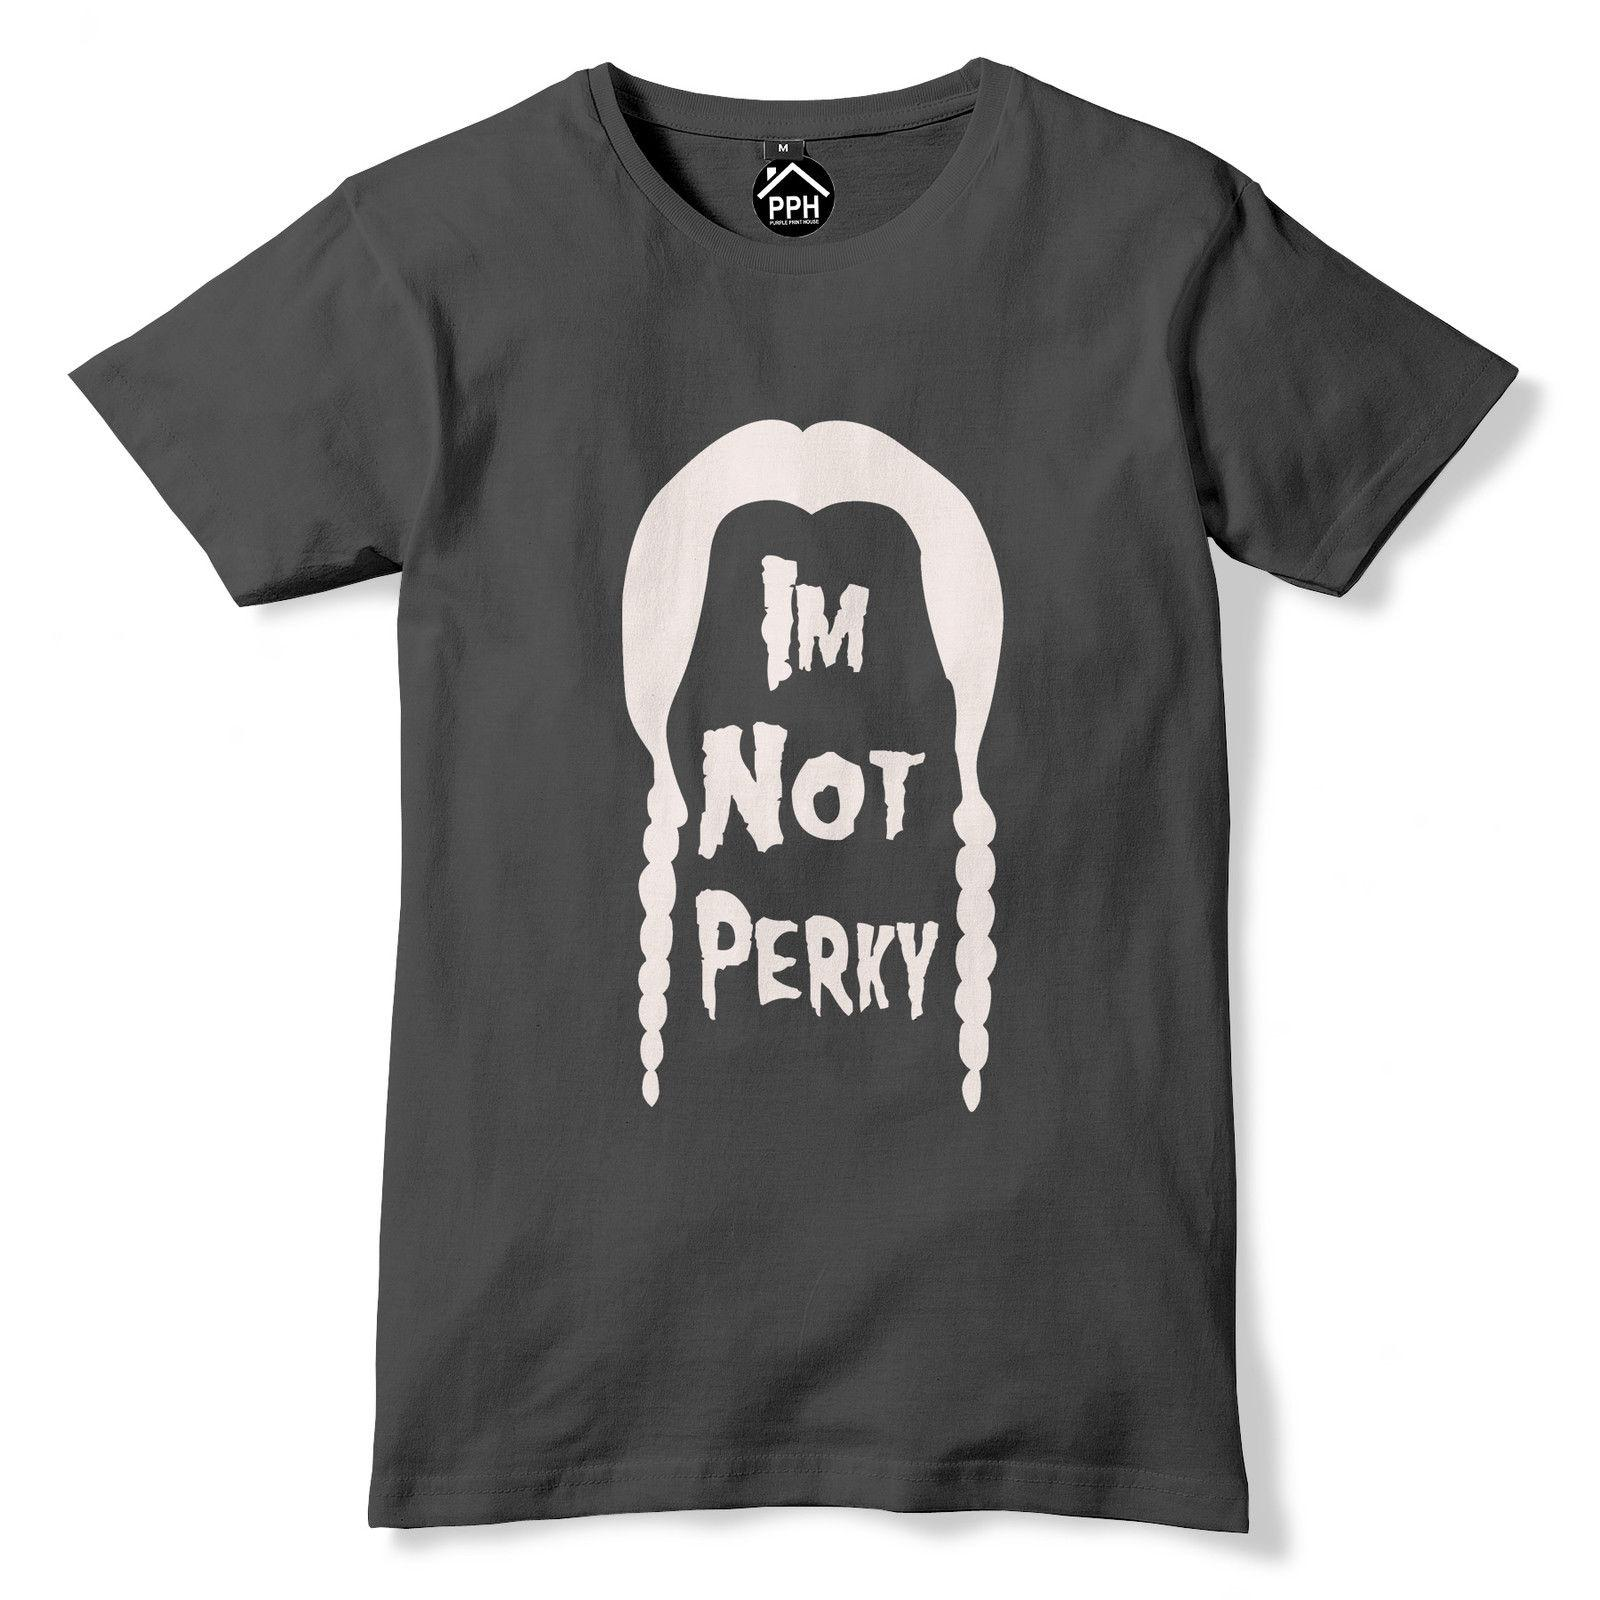 6e6a172b0a1 Im Not Perky Tshirt Addams Family Horror Outfit Halloween Top Fancy Dress  337 Funny Unisex Casual Tee Gift Cloth T Shirt Shirt Site From Tshirtsinc